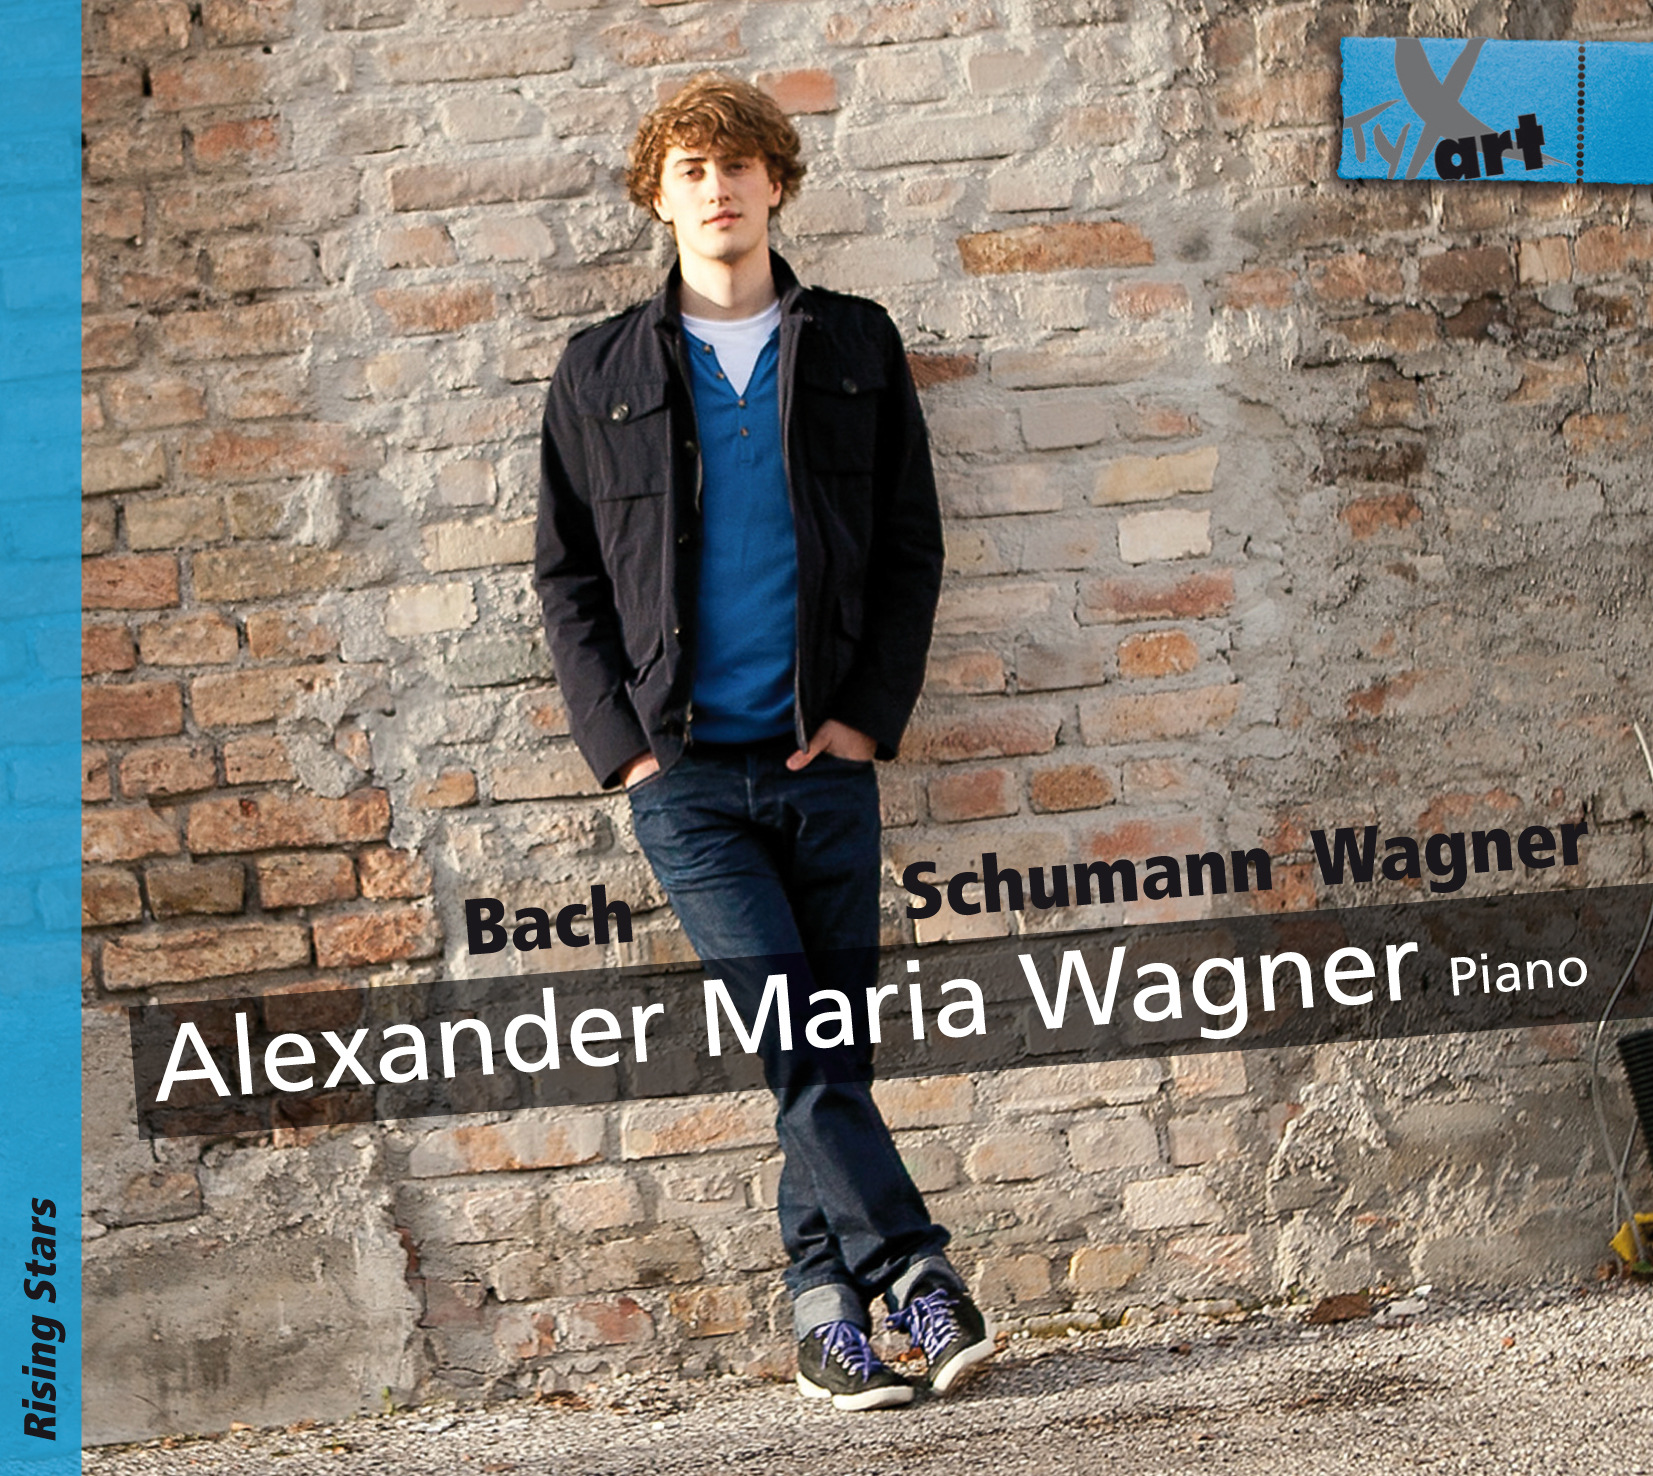 Alexander Maria Wagner, Piano